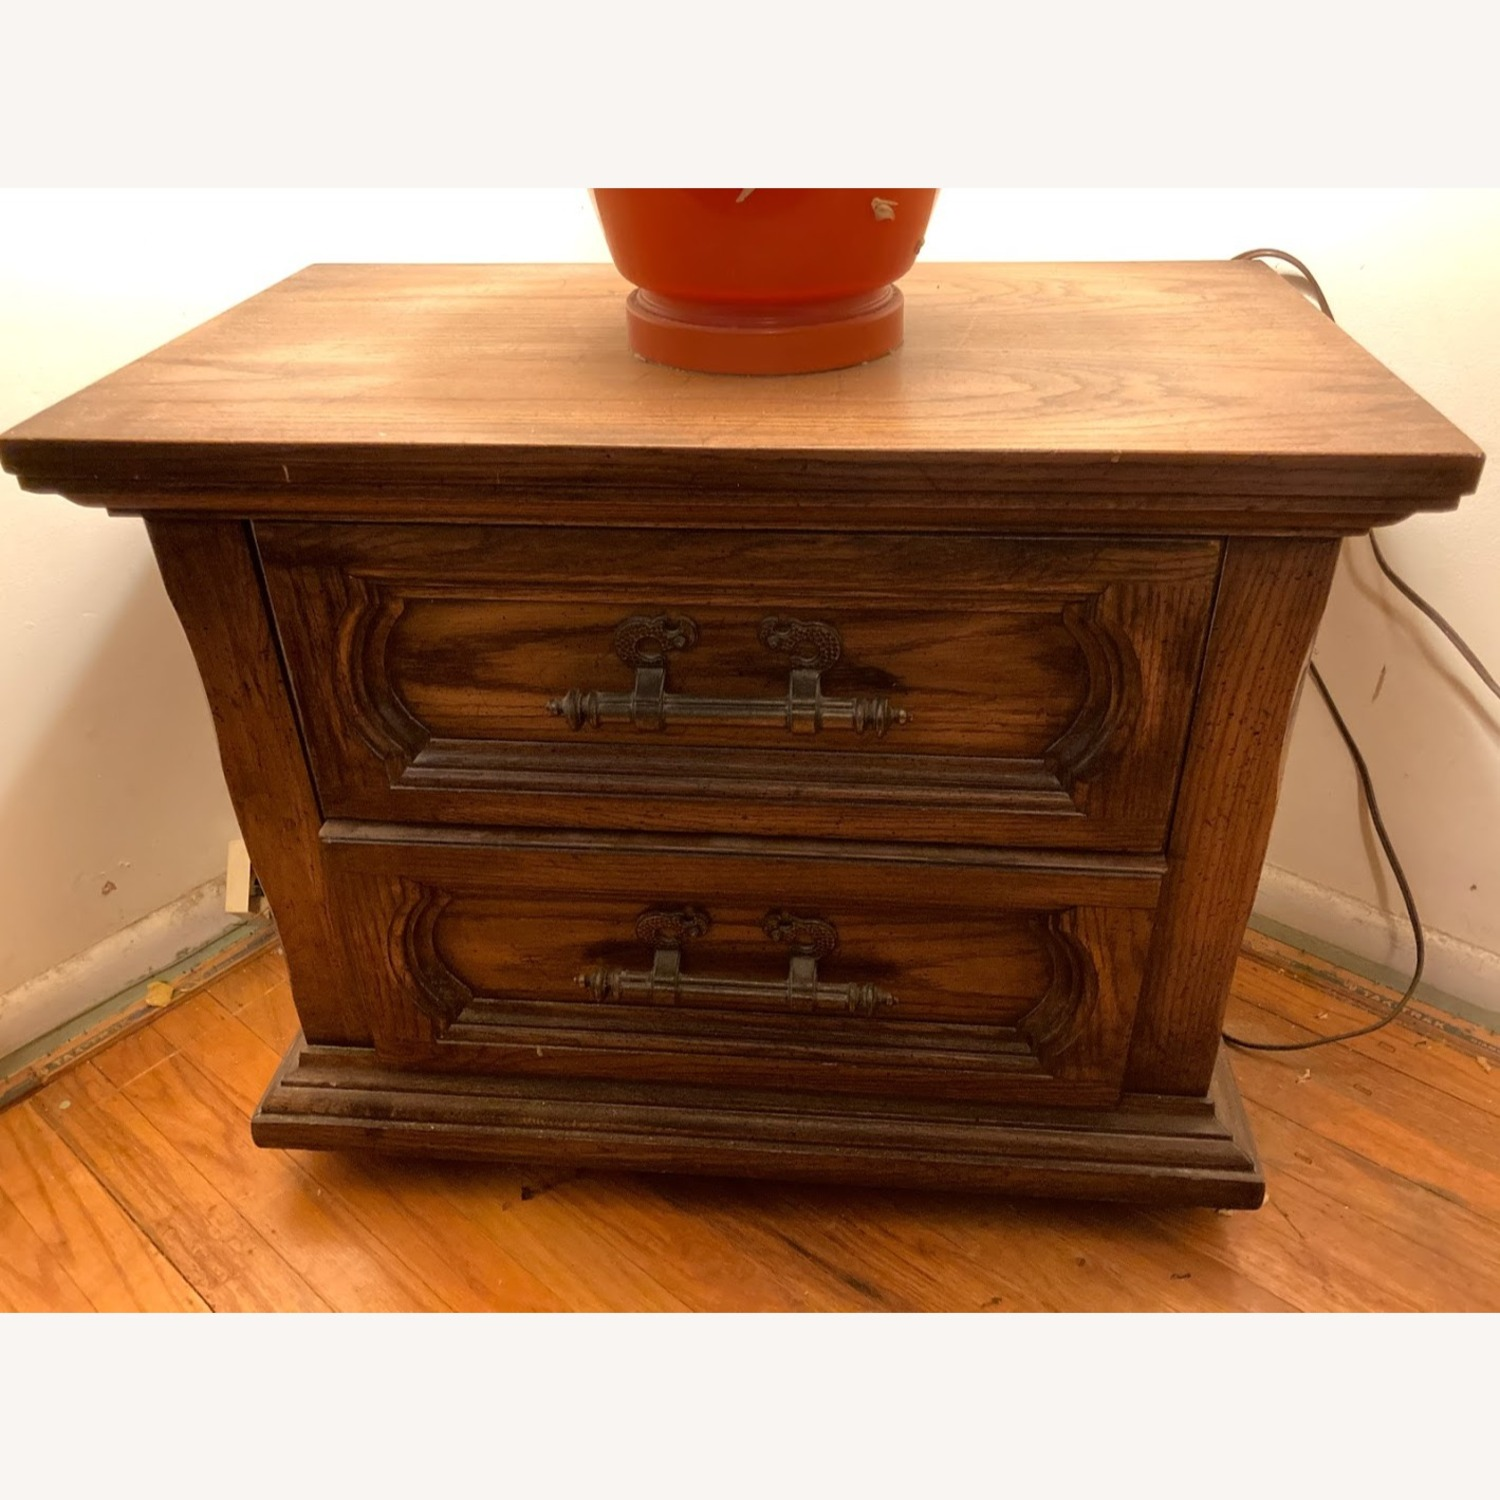 Vintage Solid Wood Side Table with 2 Drawers - image-1